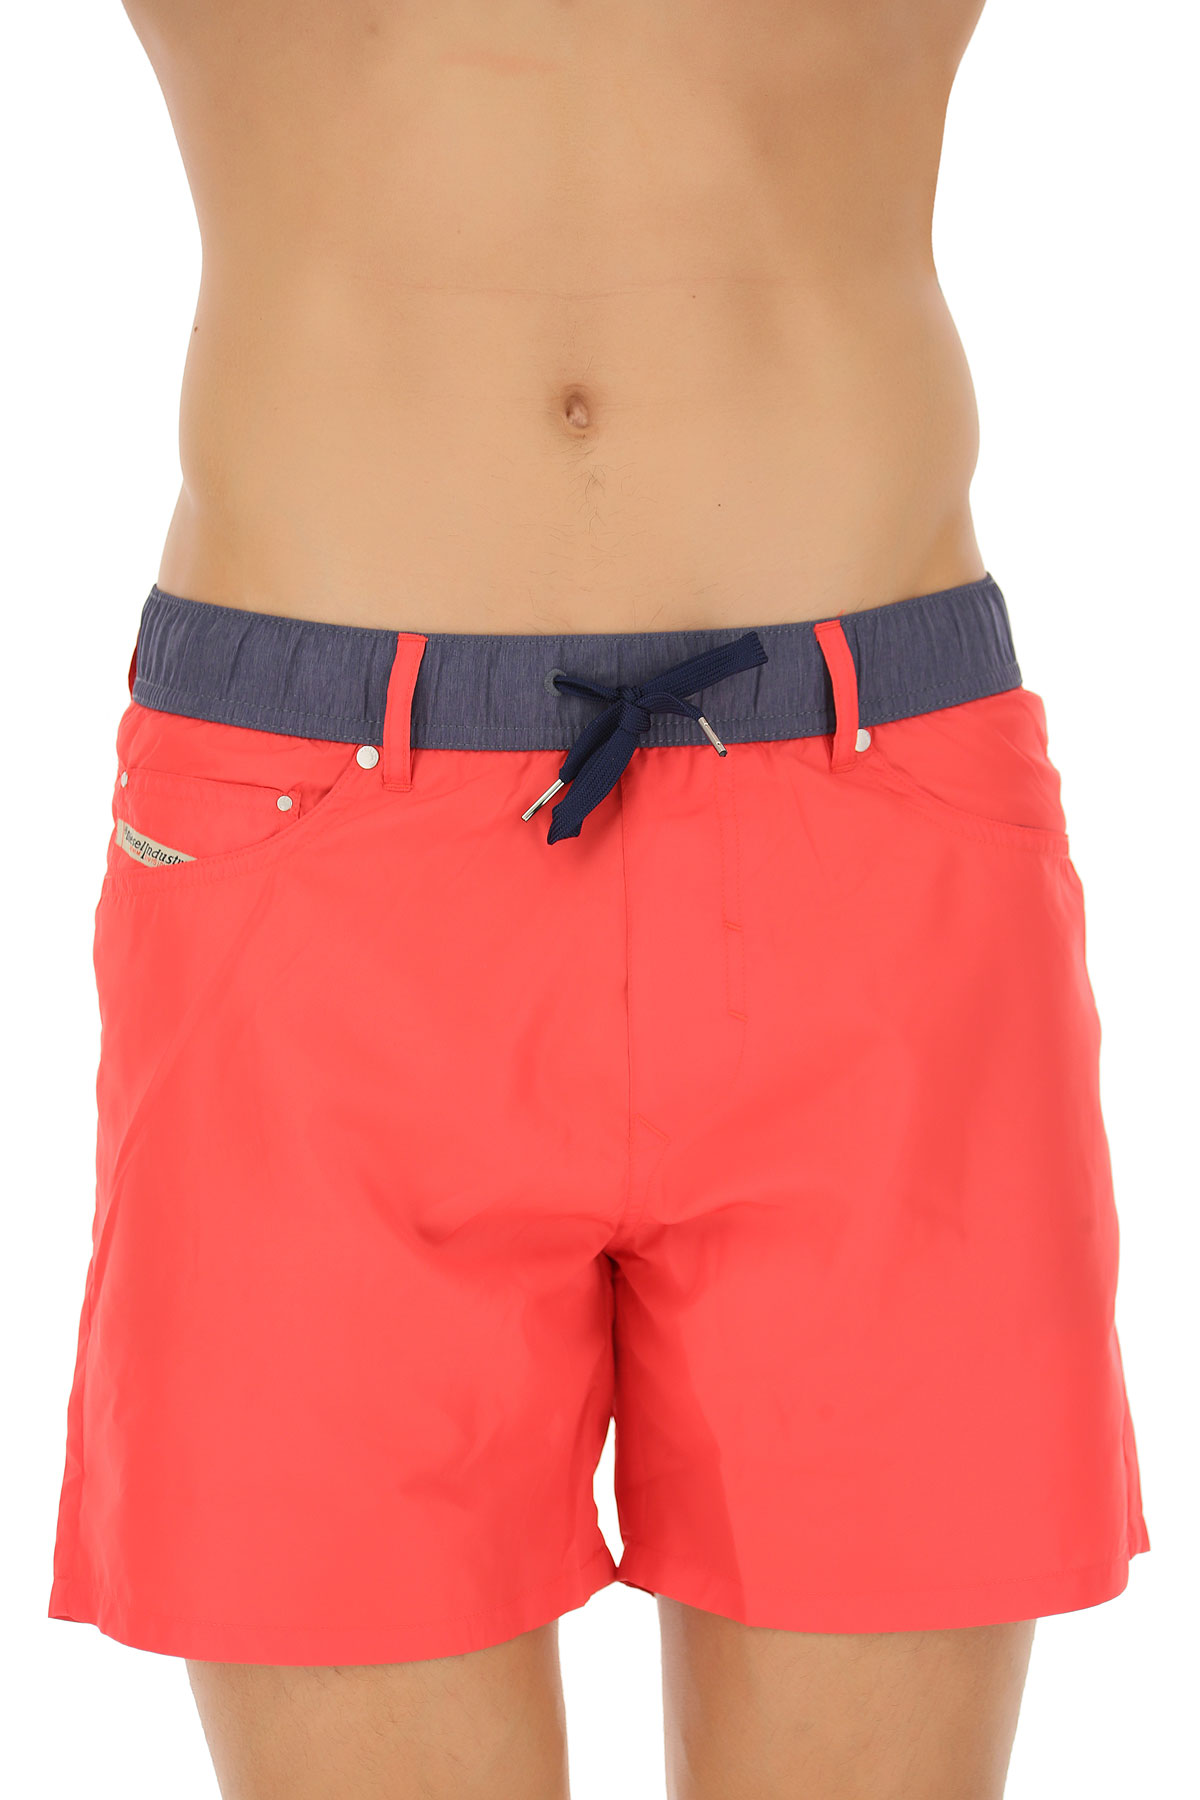 Image of Diesel Swim Shorts Trunks for Men, Coral, polyester, 2017, L XL